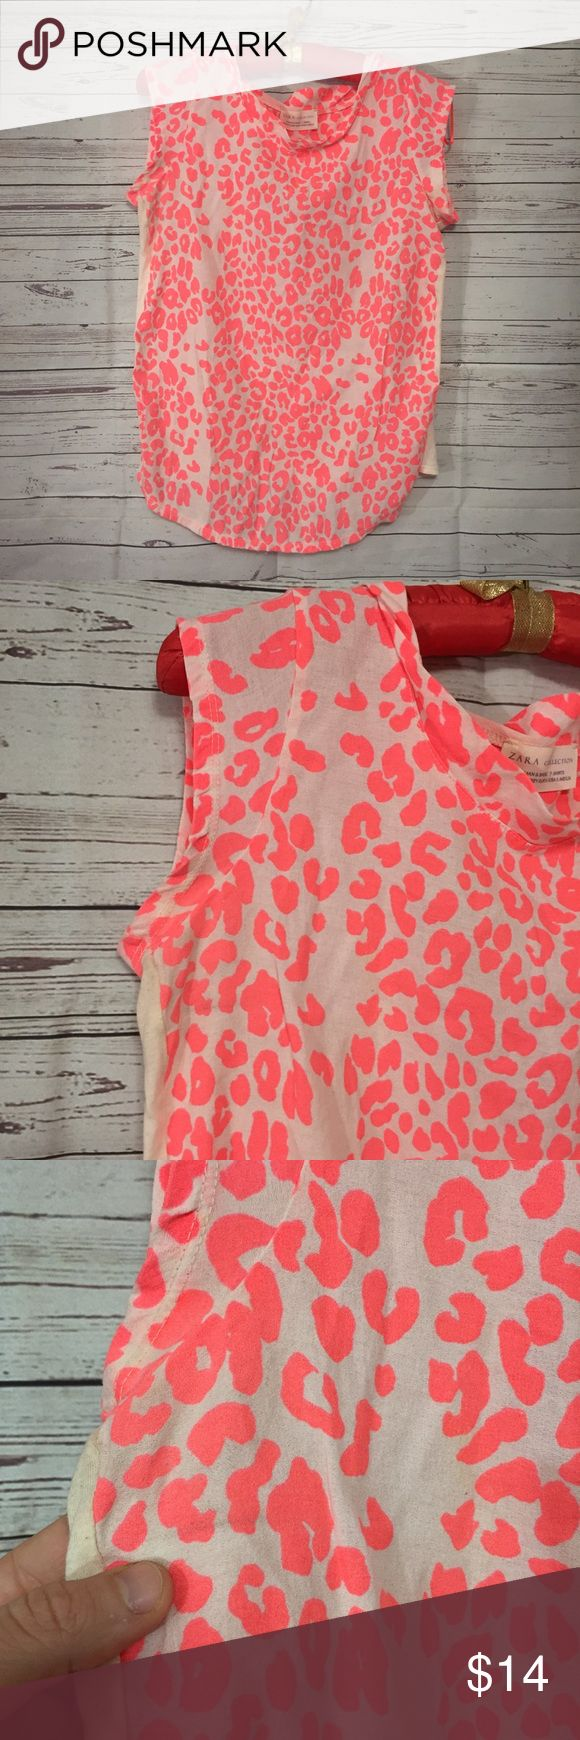 "Zara sleeveless neon orange cheetah blouse small Women's casual sleeveless blouse, sleeveless - overall white with all over neon orange cheetah print on the front. Women's size small. Back with shoulder keyhole.   **Small mark under armpit - please review image**  All measurements approximate.  Armpit to armpit (one side): 16.5"" Length from shoulder: 26"" Zara Tops Blouses"